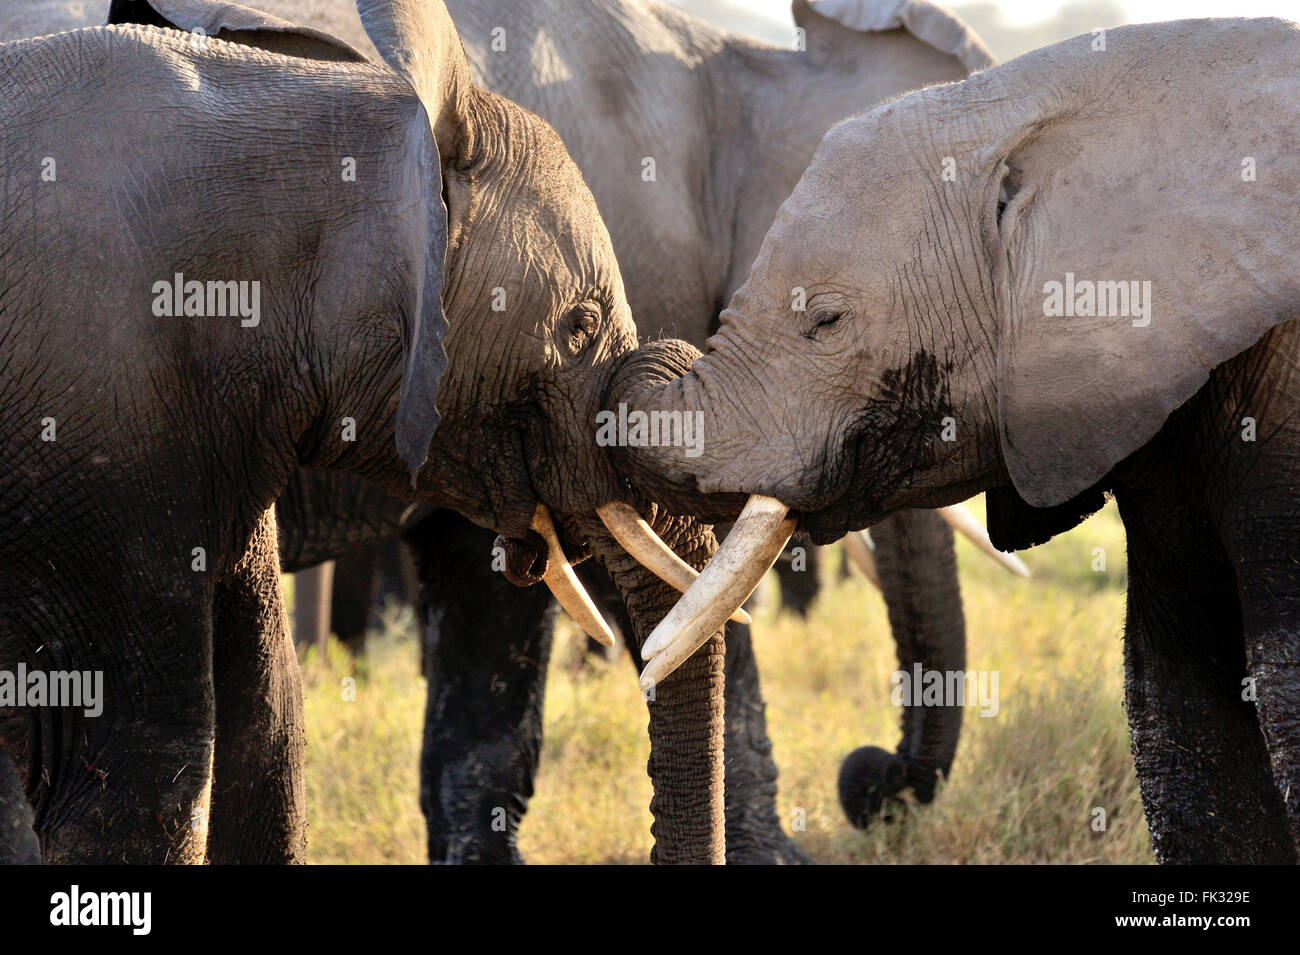 Playful and tenderly young Elephants, Loxodonta africana, in Amboseli National Park - Stock Image